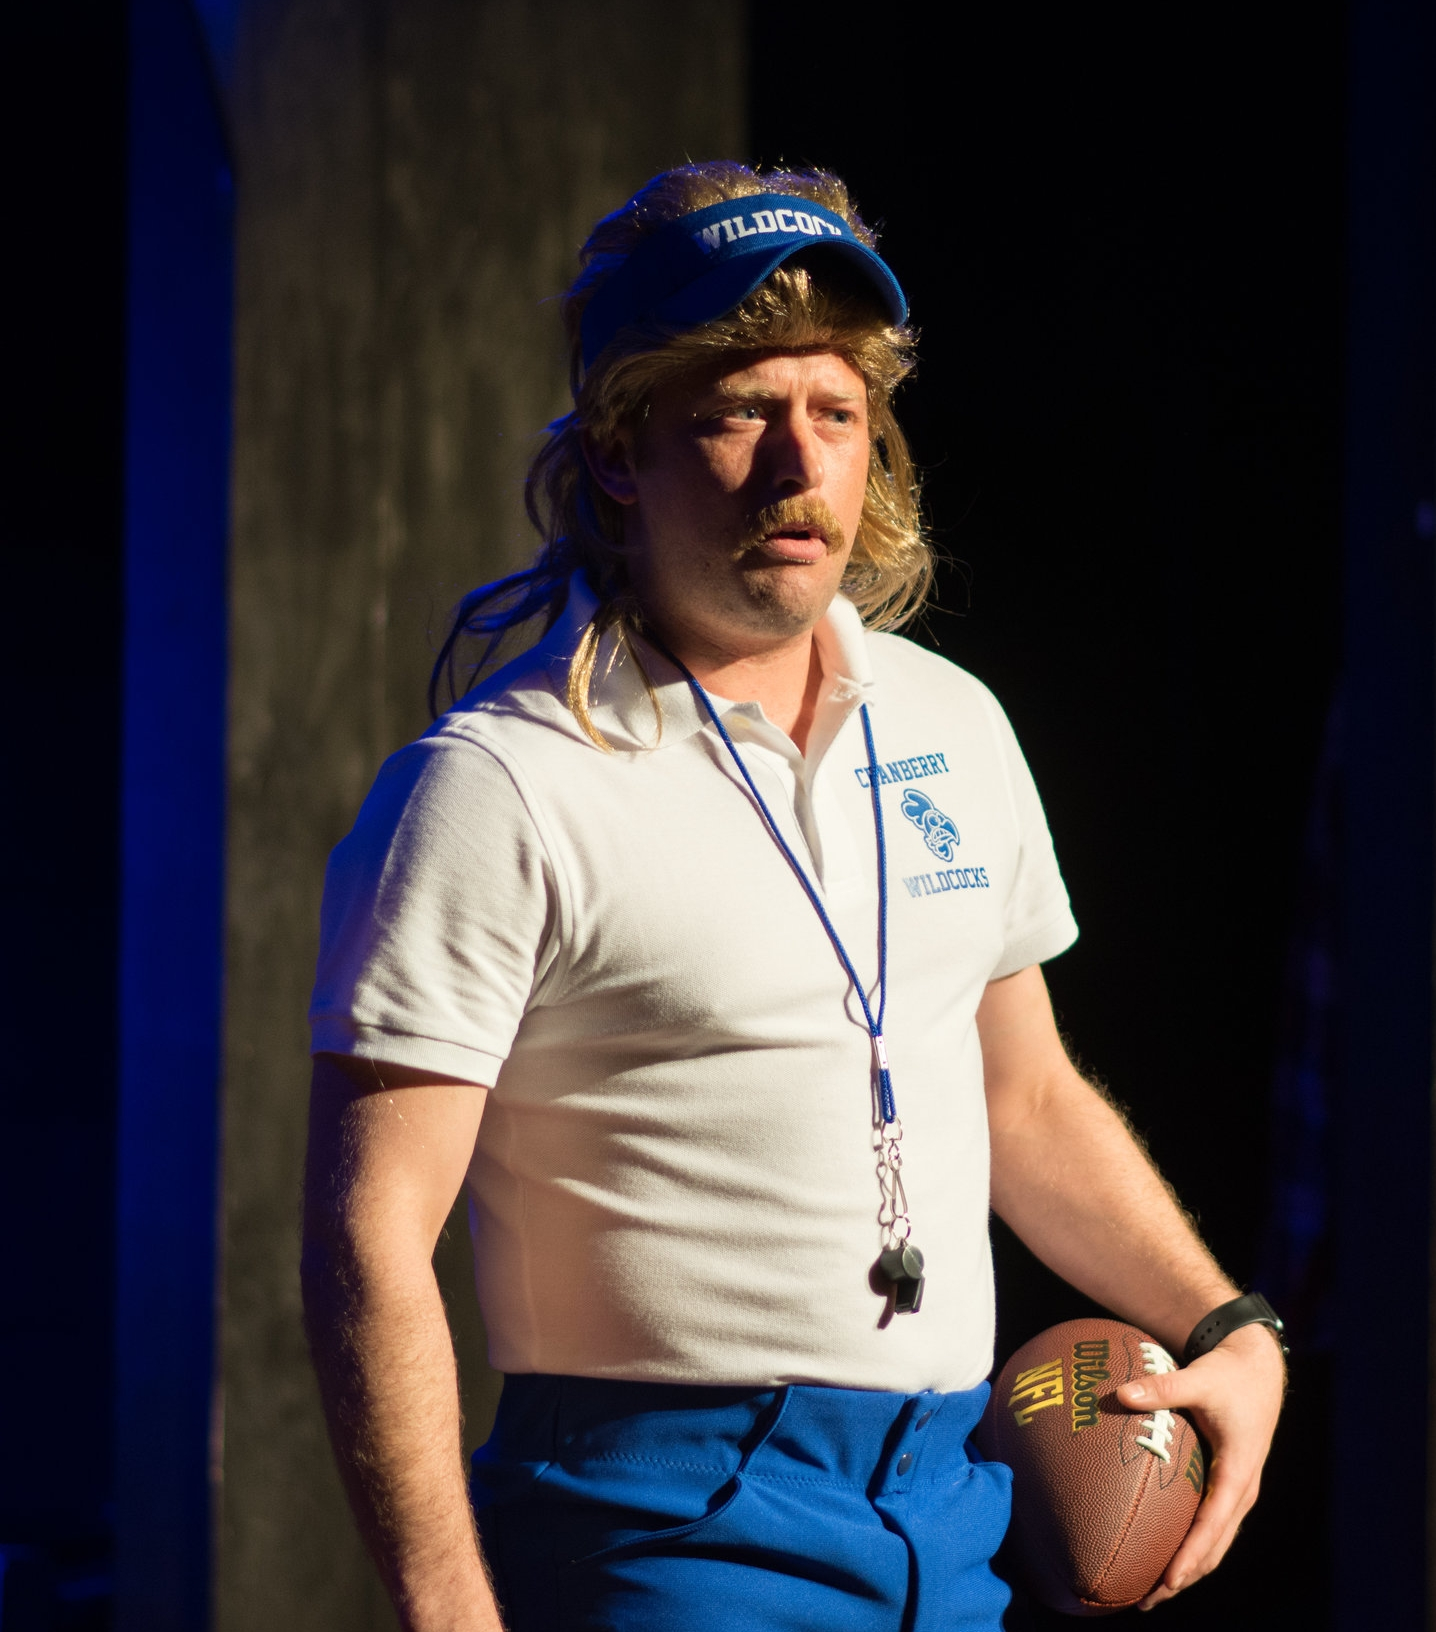 Coach Dale (Played by Brent Crable)